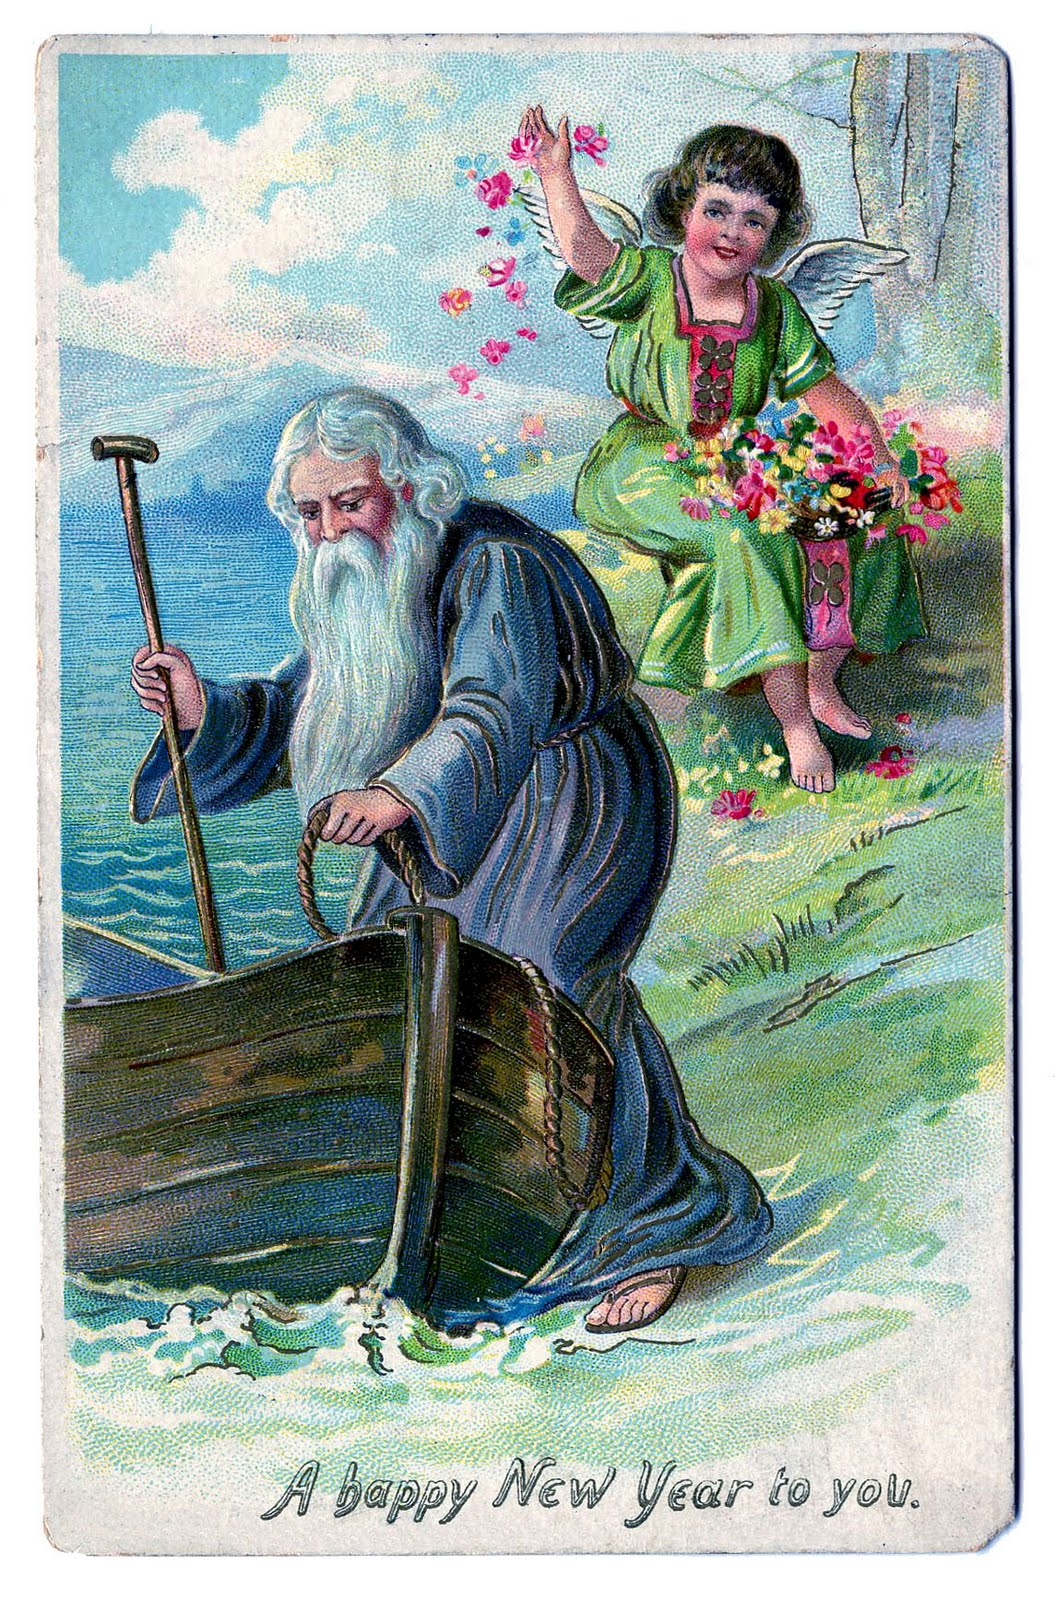 click on image to enlarge heres a classic antique new year postcard showing father time and